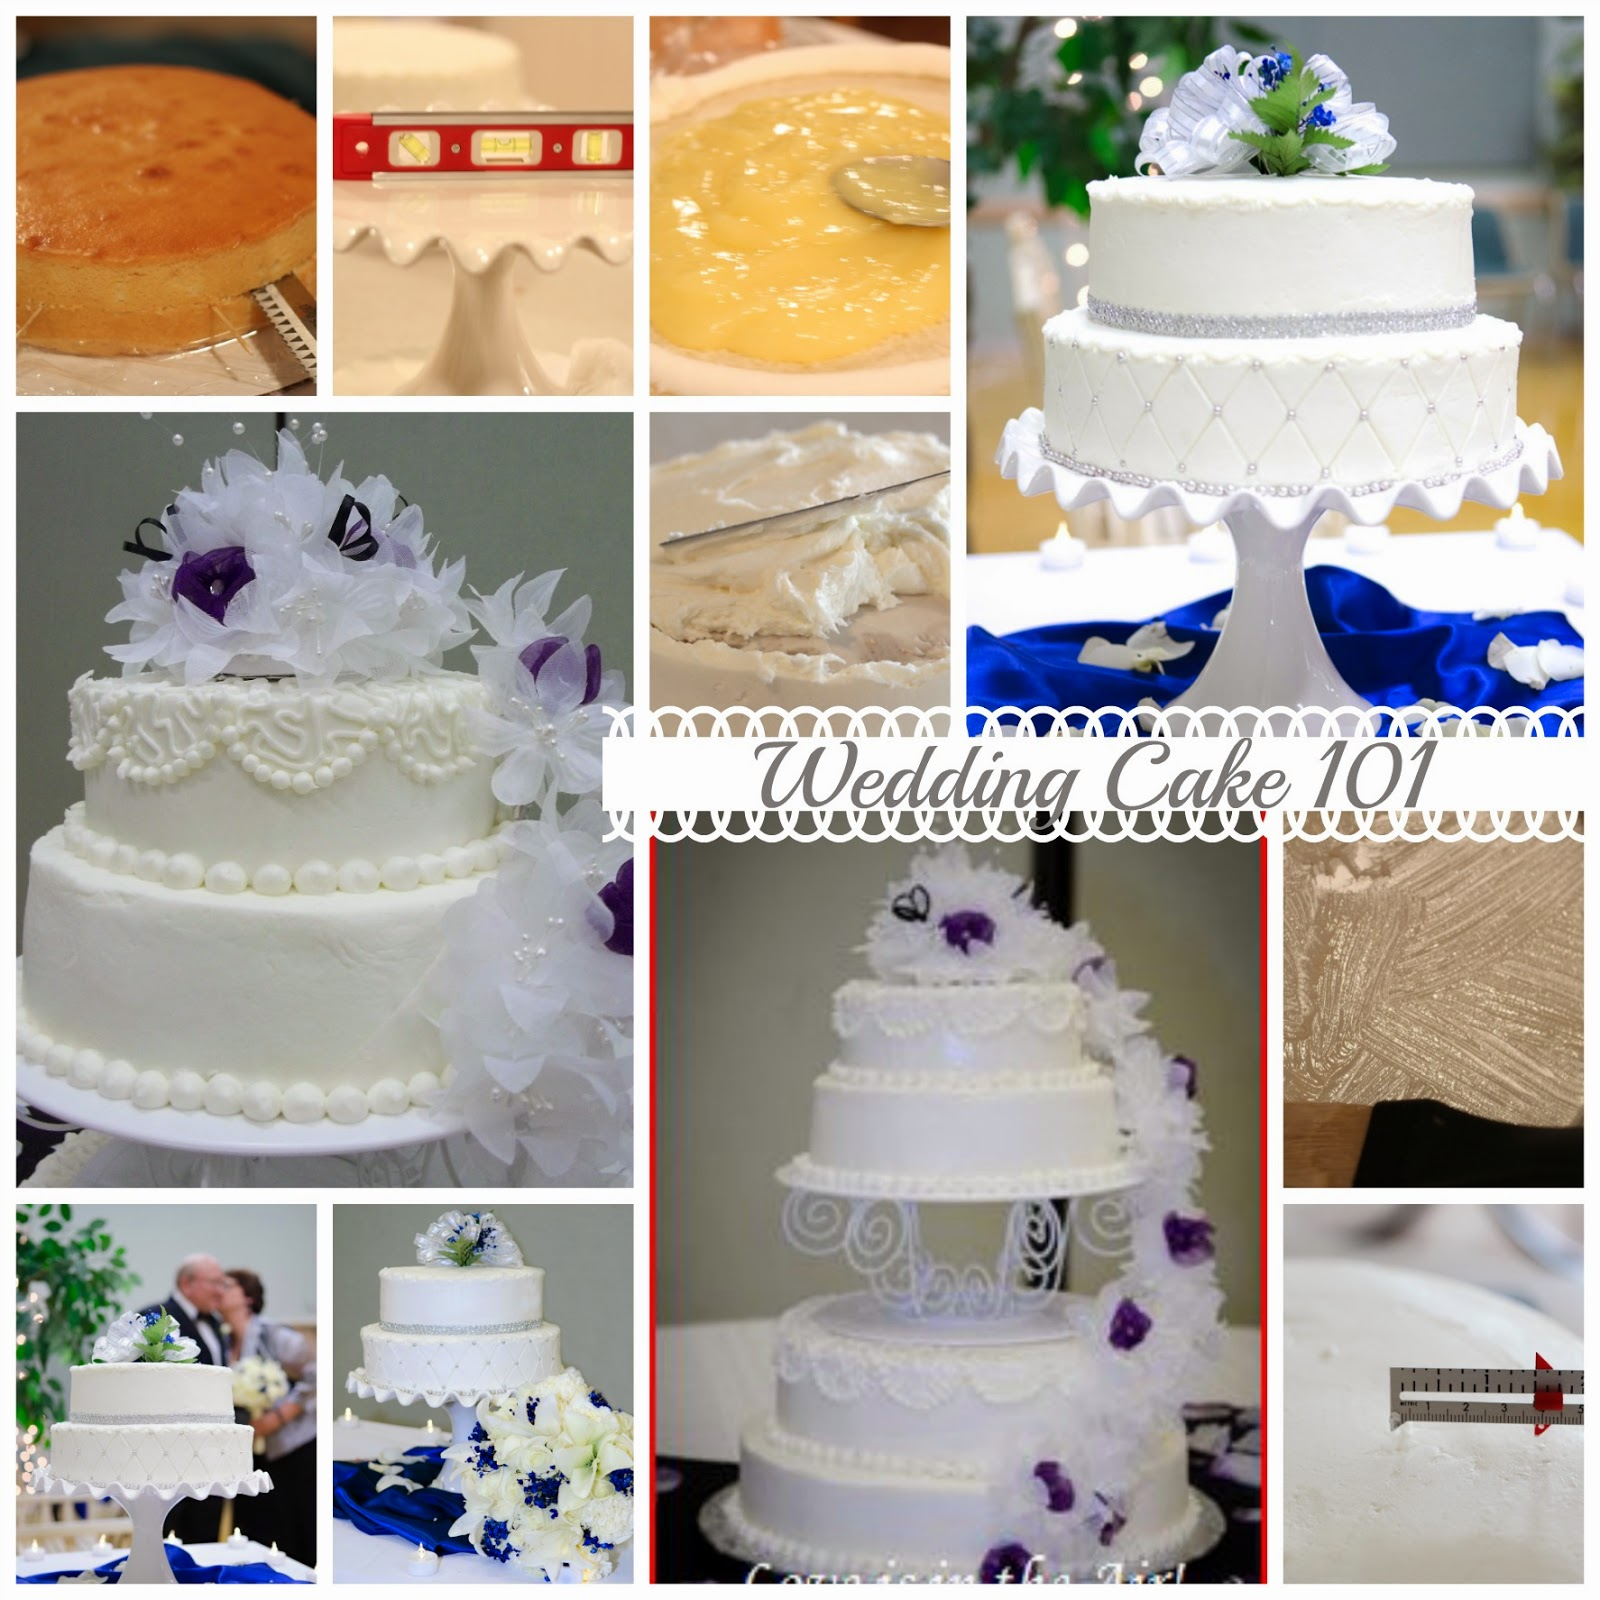 Wedding Cake 101 An Introduction To Wedding Cakes: Scrumptilicious 4 You: Wedding Cake 101: The Basics Tutorial